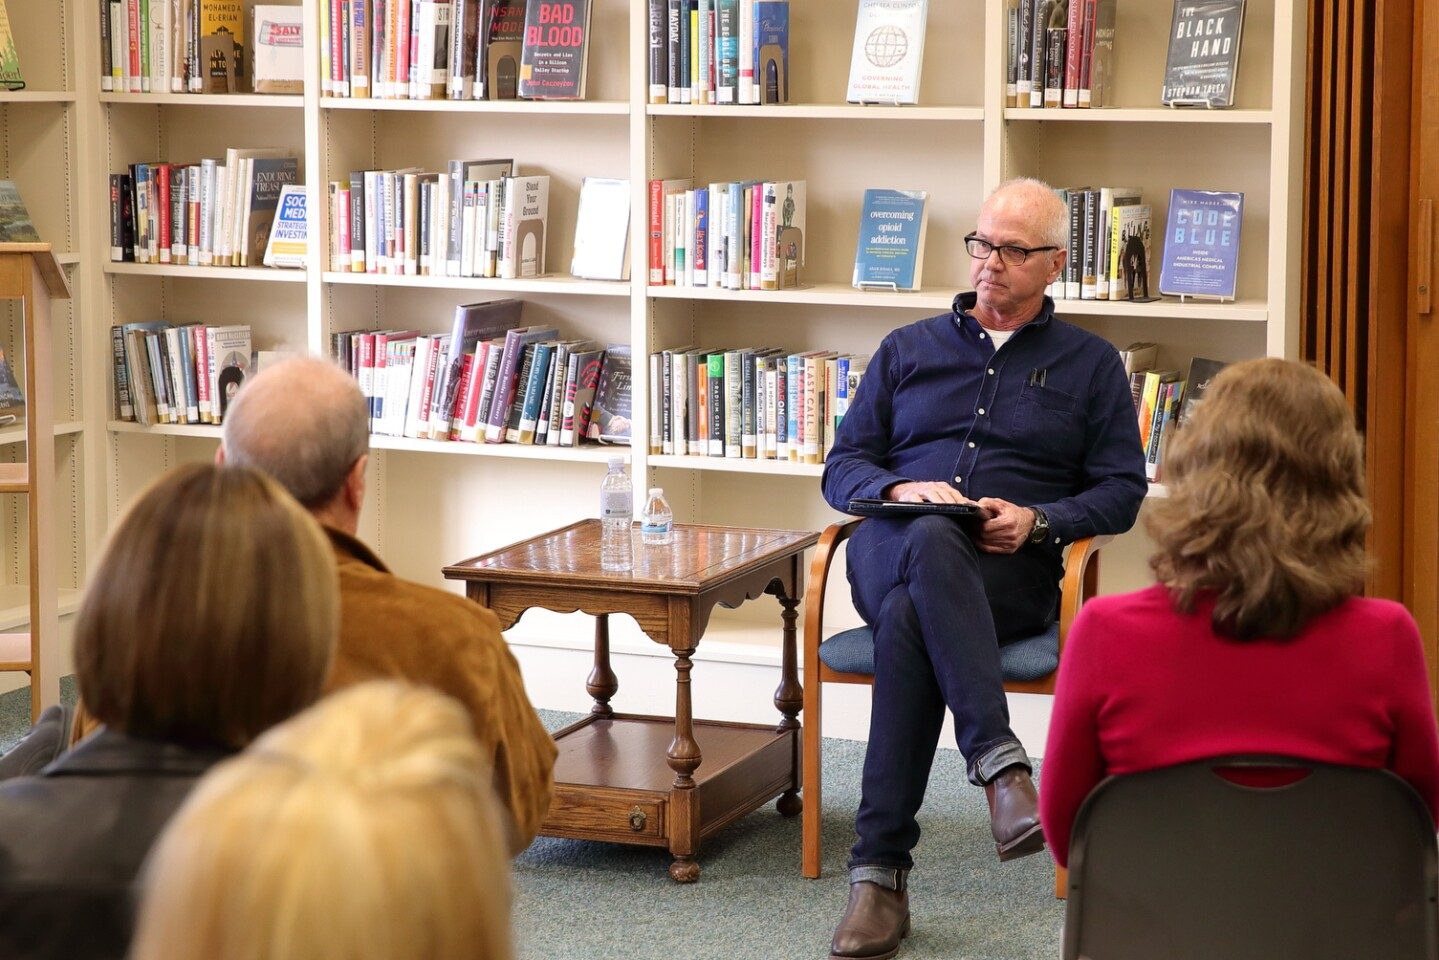 The Library Guild of RSF and WarwickÕs bookshop hosted Chris Hauty the author of ÒDeep StateÓ